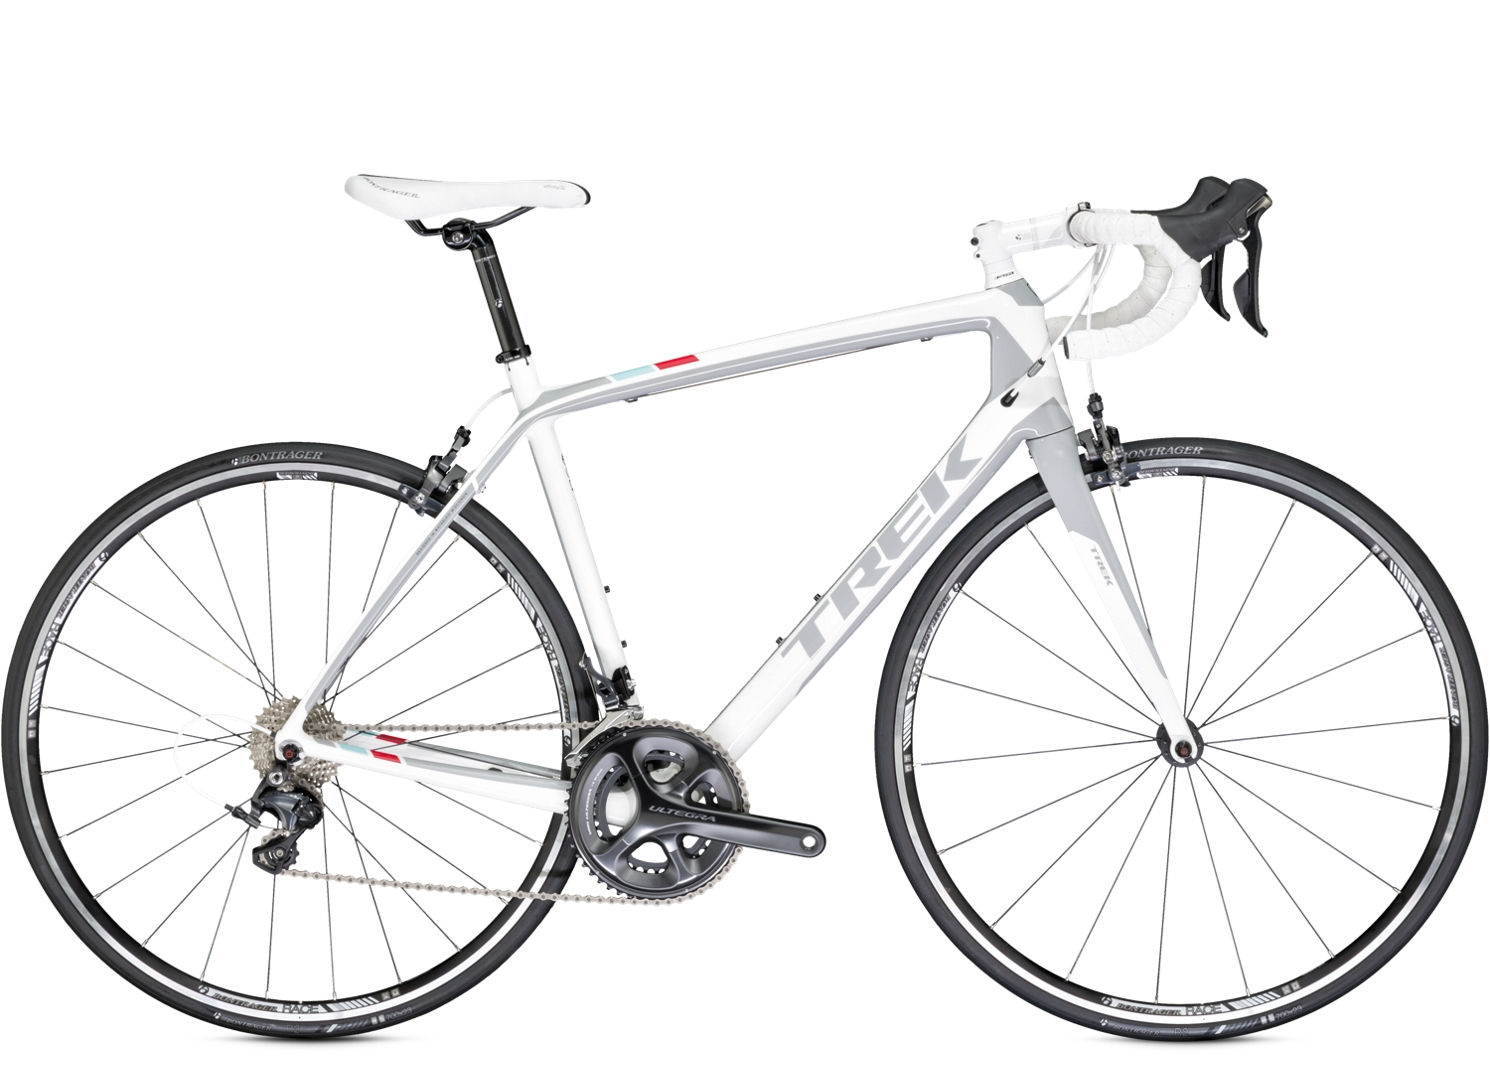 2014 Madone 4.7 H2 Compact - Bike Archive - Trek Bicycle